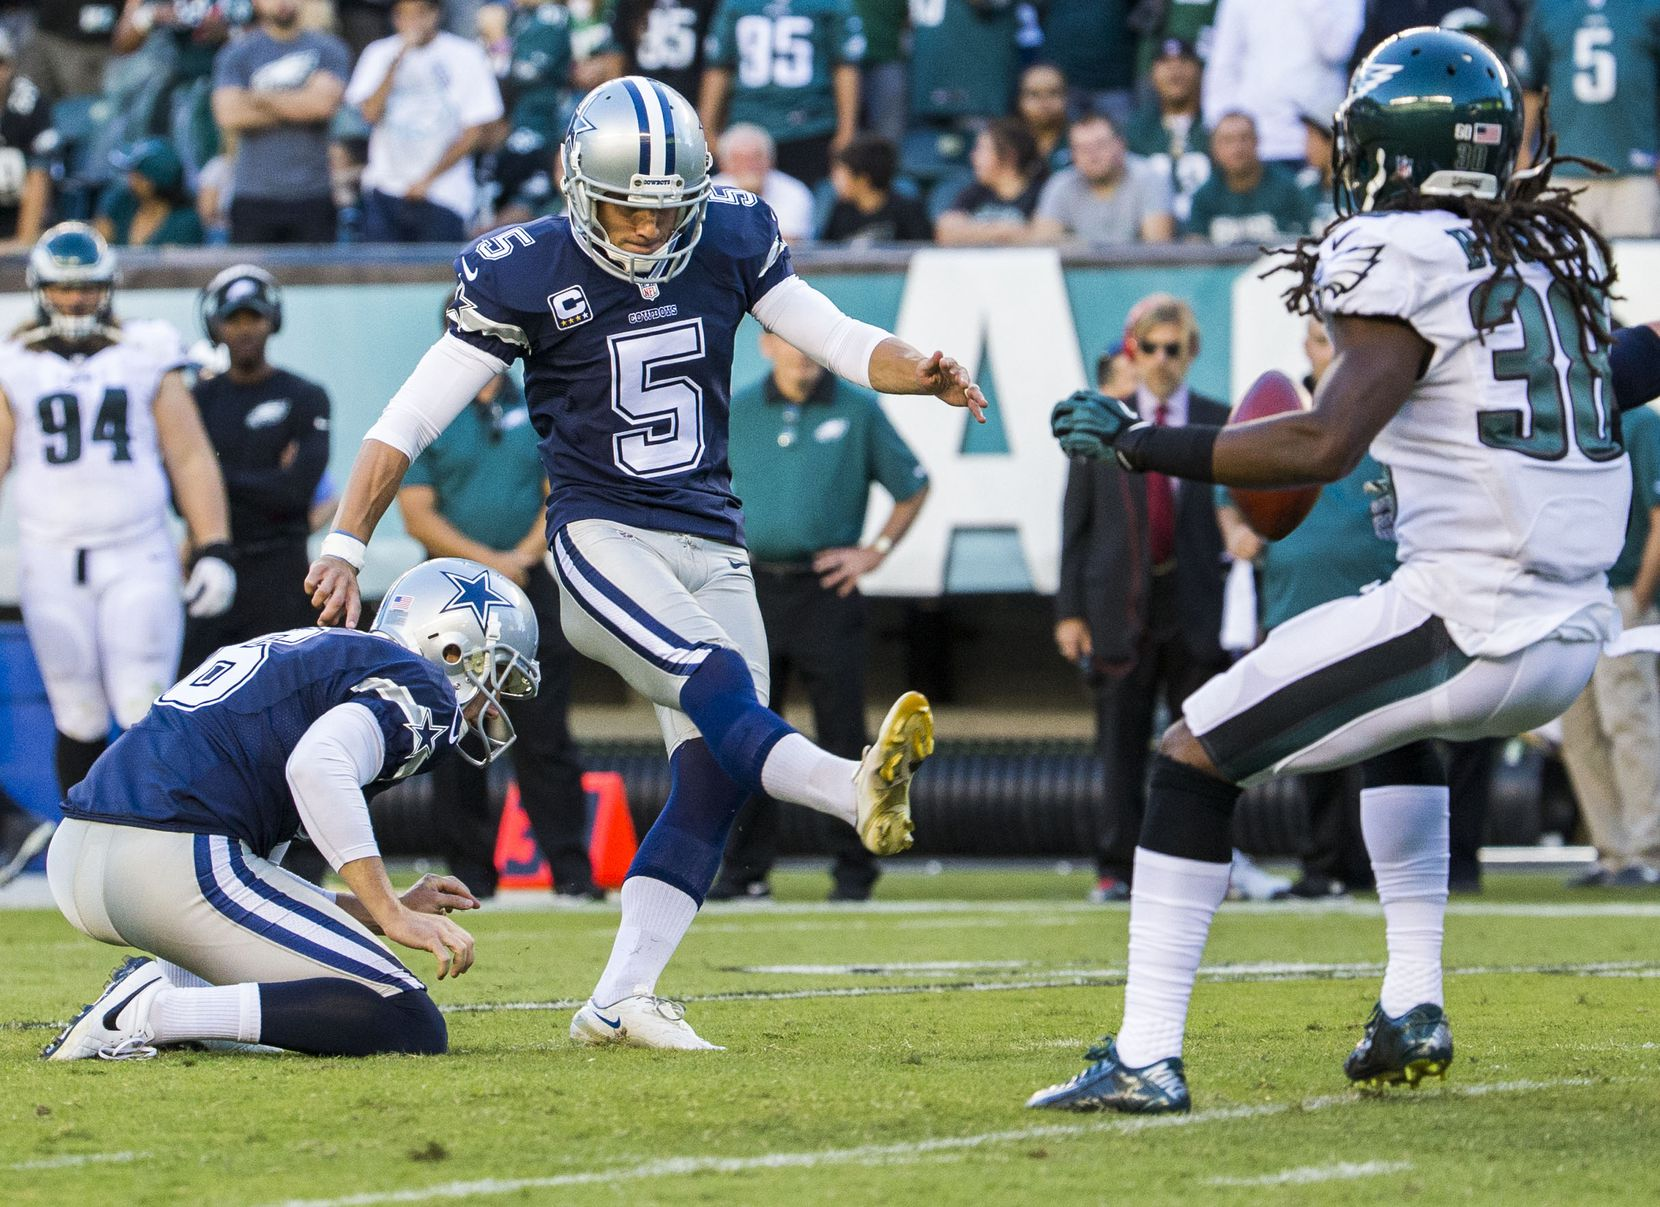 Dallas Cowboys kicker Dan Bailey (5) kicks a field goal during the first half of their game against the Philadelphia Eagles on Sunday, September 20, 2015 at Lincoln Financial Field in Philadelphia, Pennsylvania.   (Ashley Landis/The Dallas Morning News)